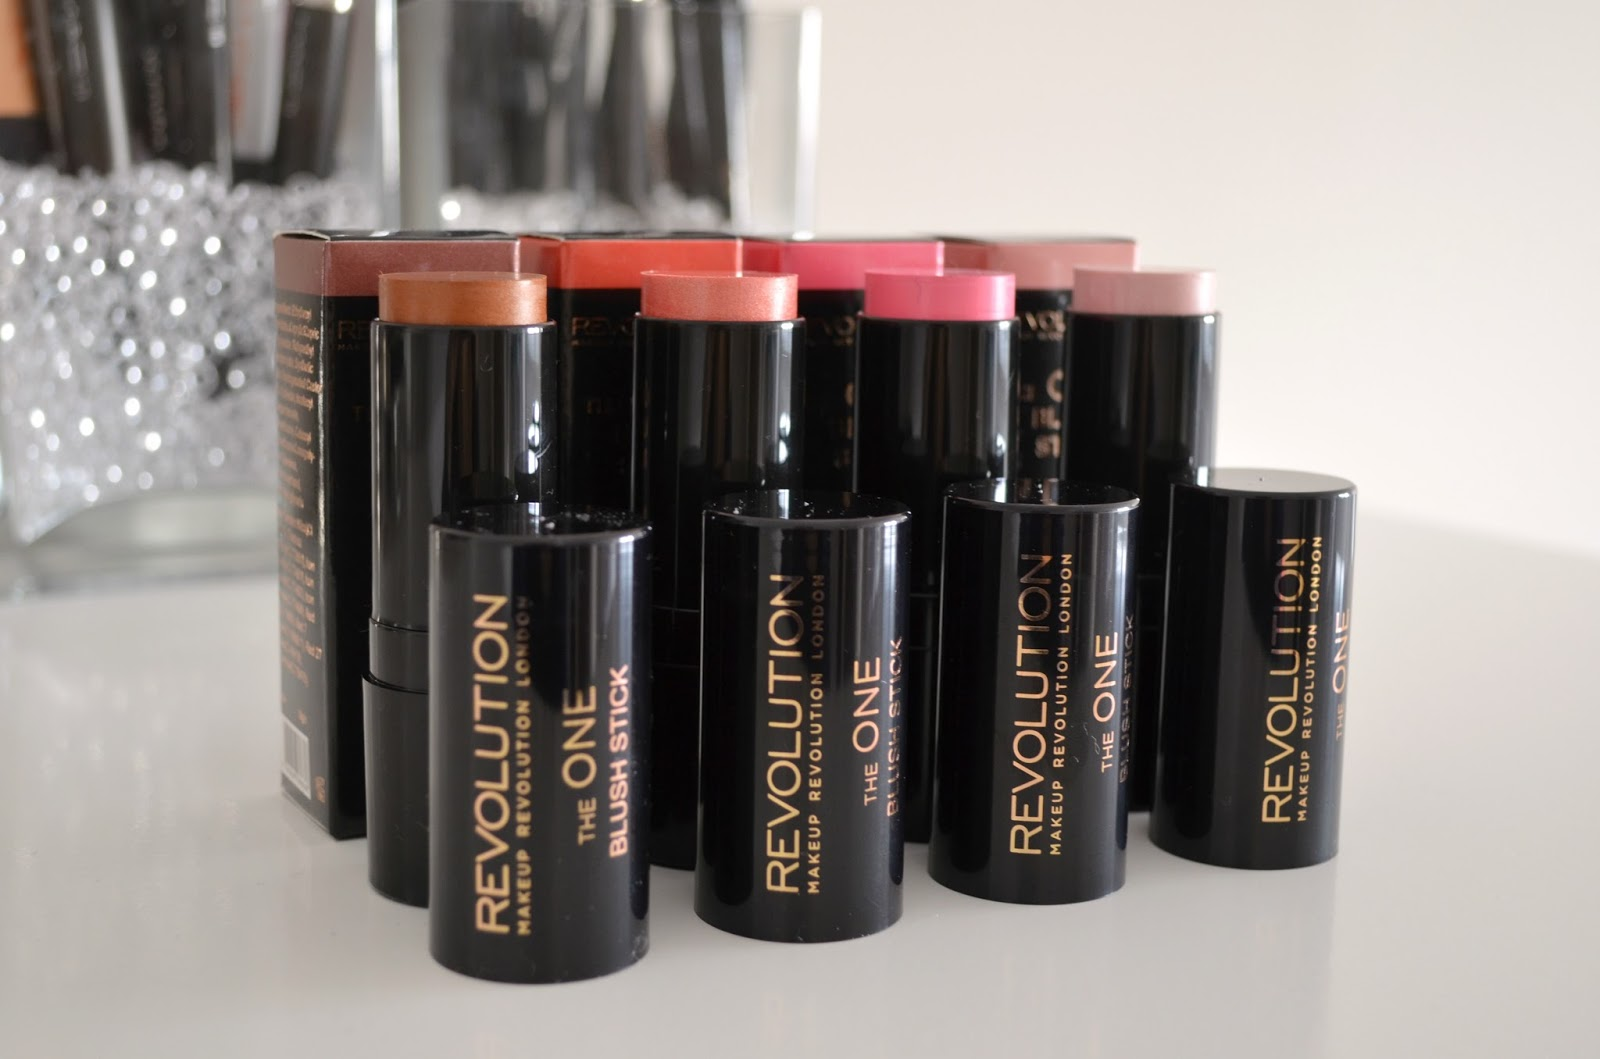 Makeup Revolution The One blush sticks review sheen formula